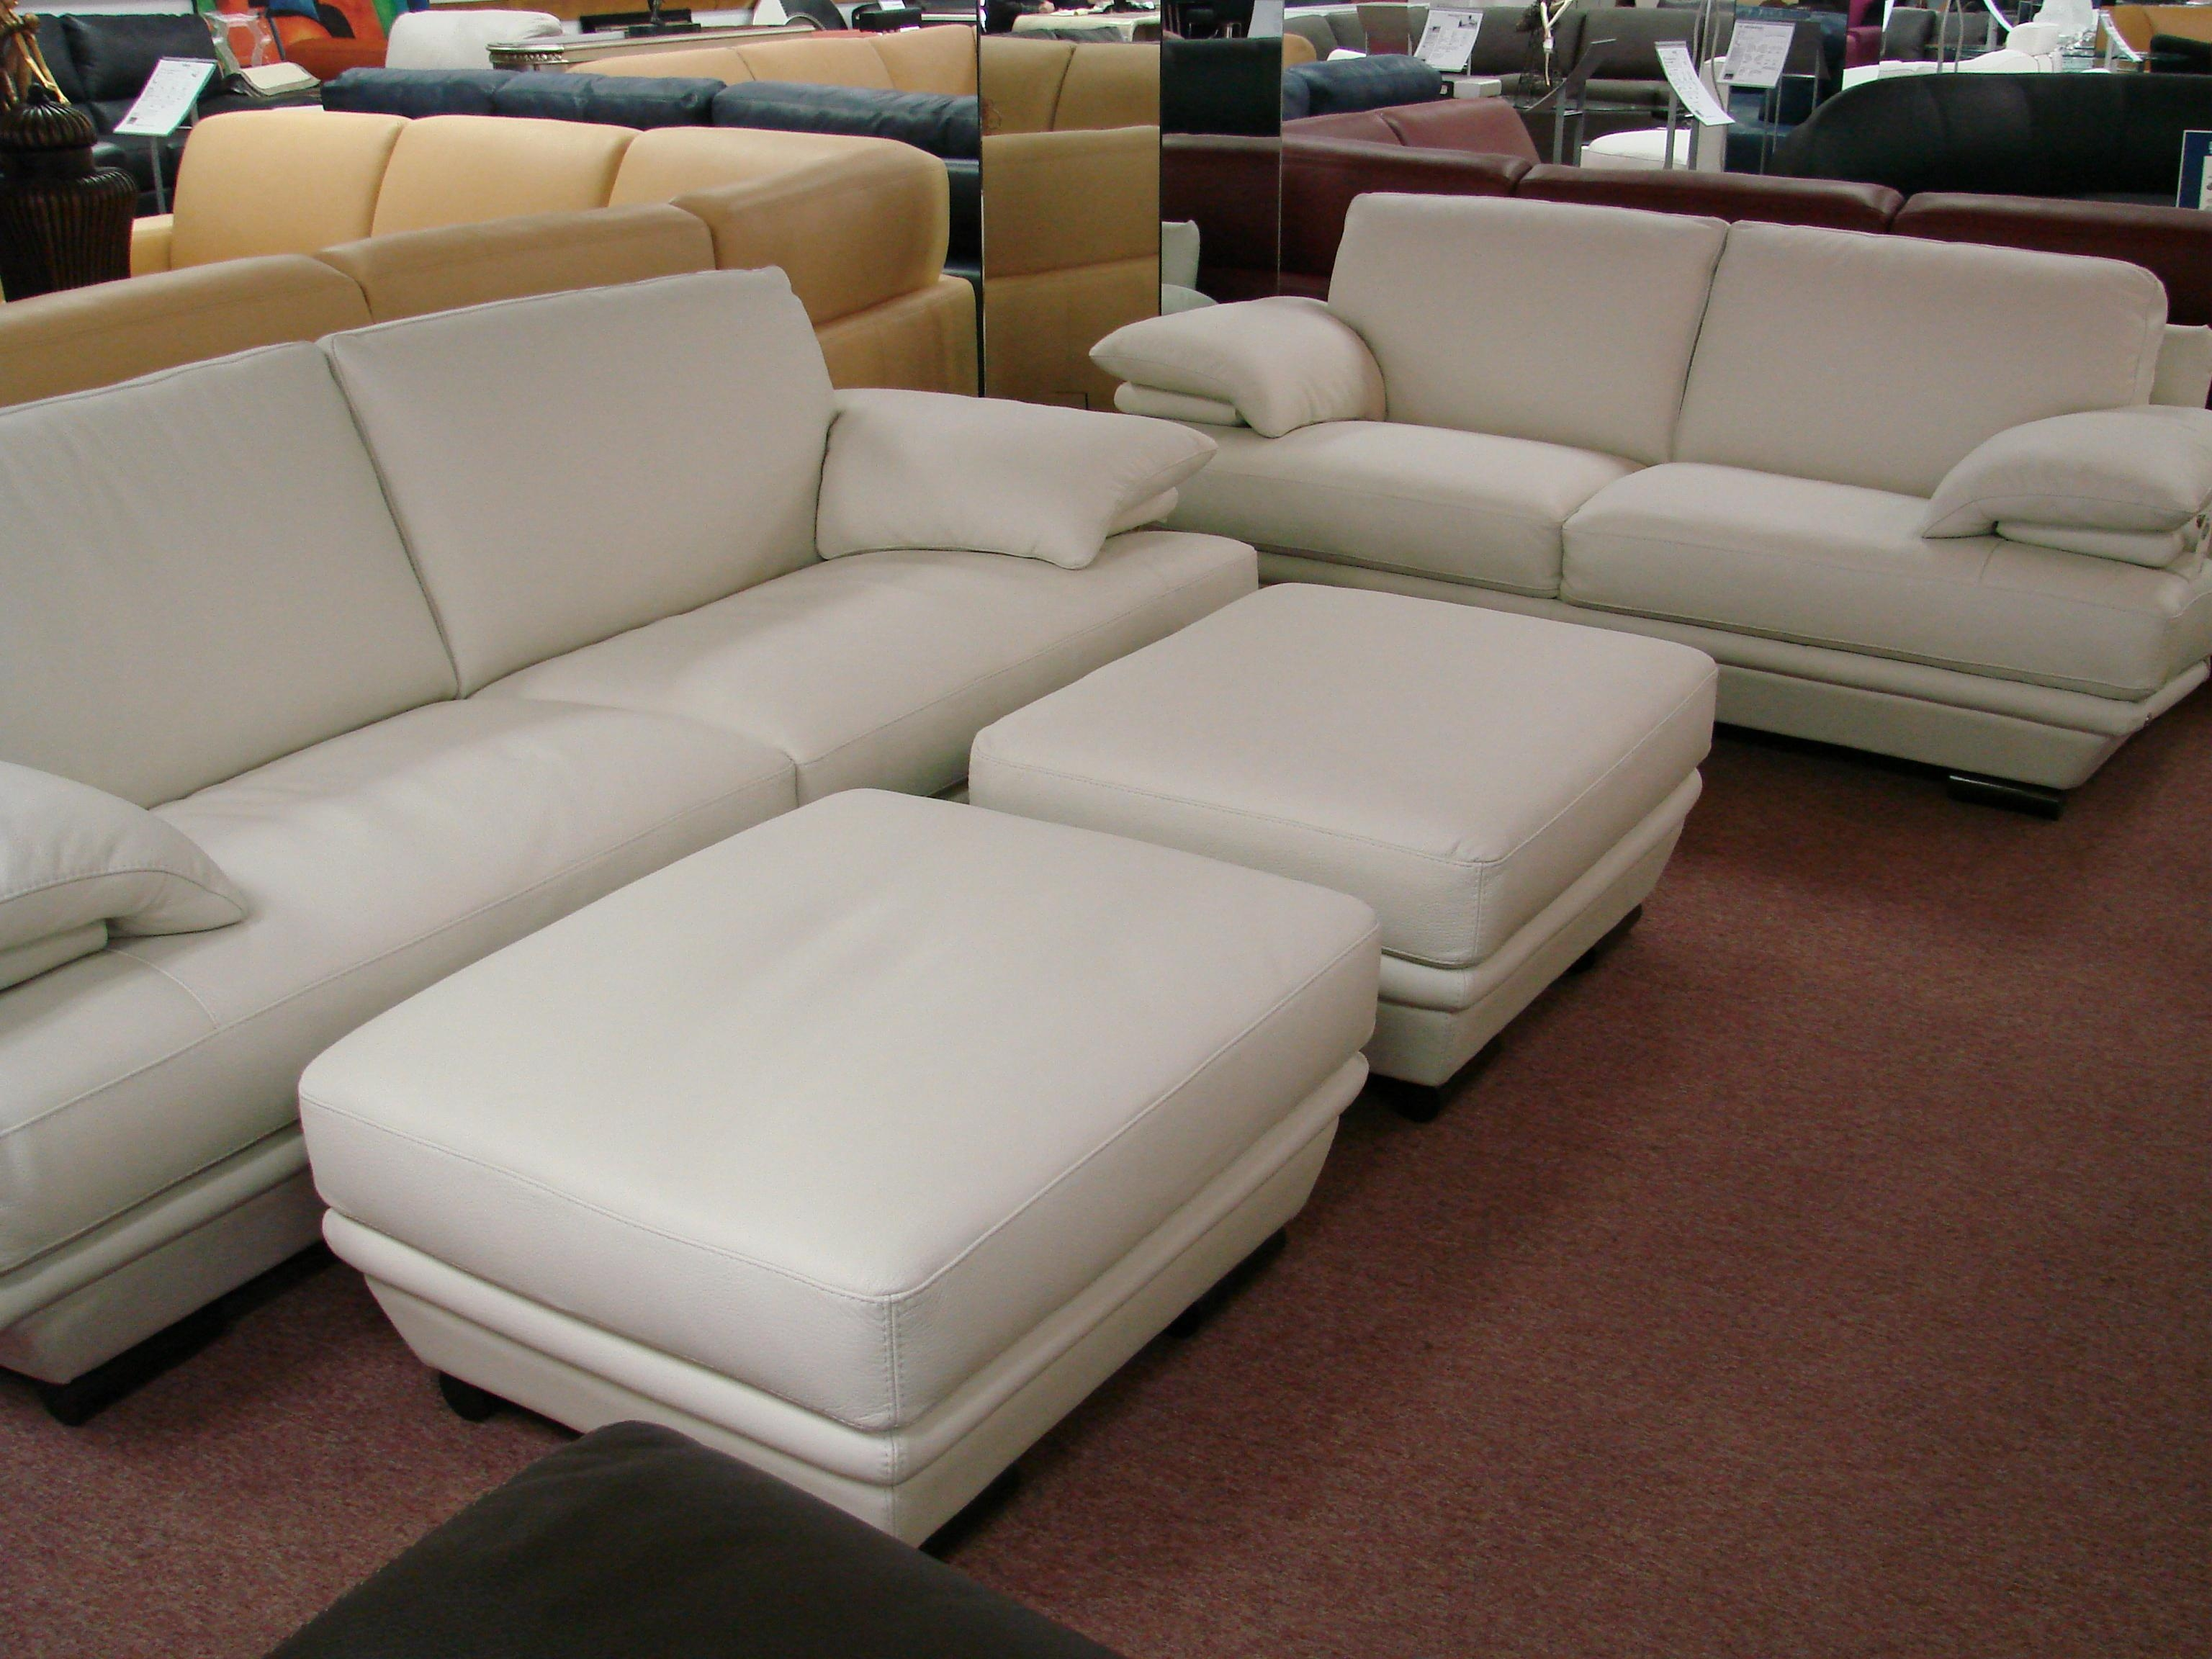 Natuzzi Leather Sofa Sleeper | Tehranmix Decoration Within Natuzzi Sleeper Sofas (View 11 of 20)